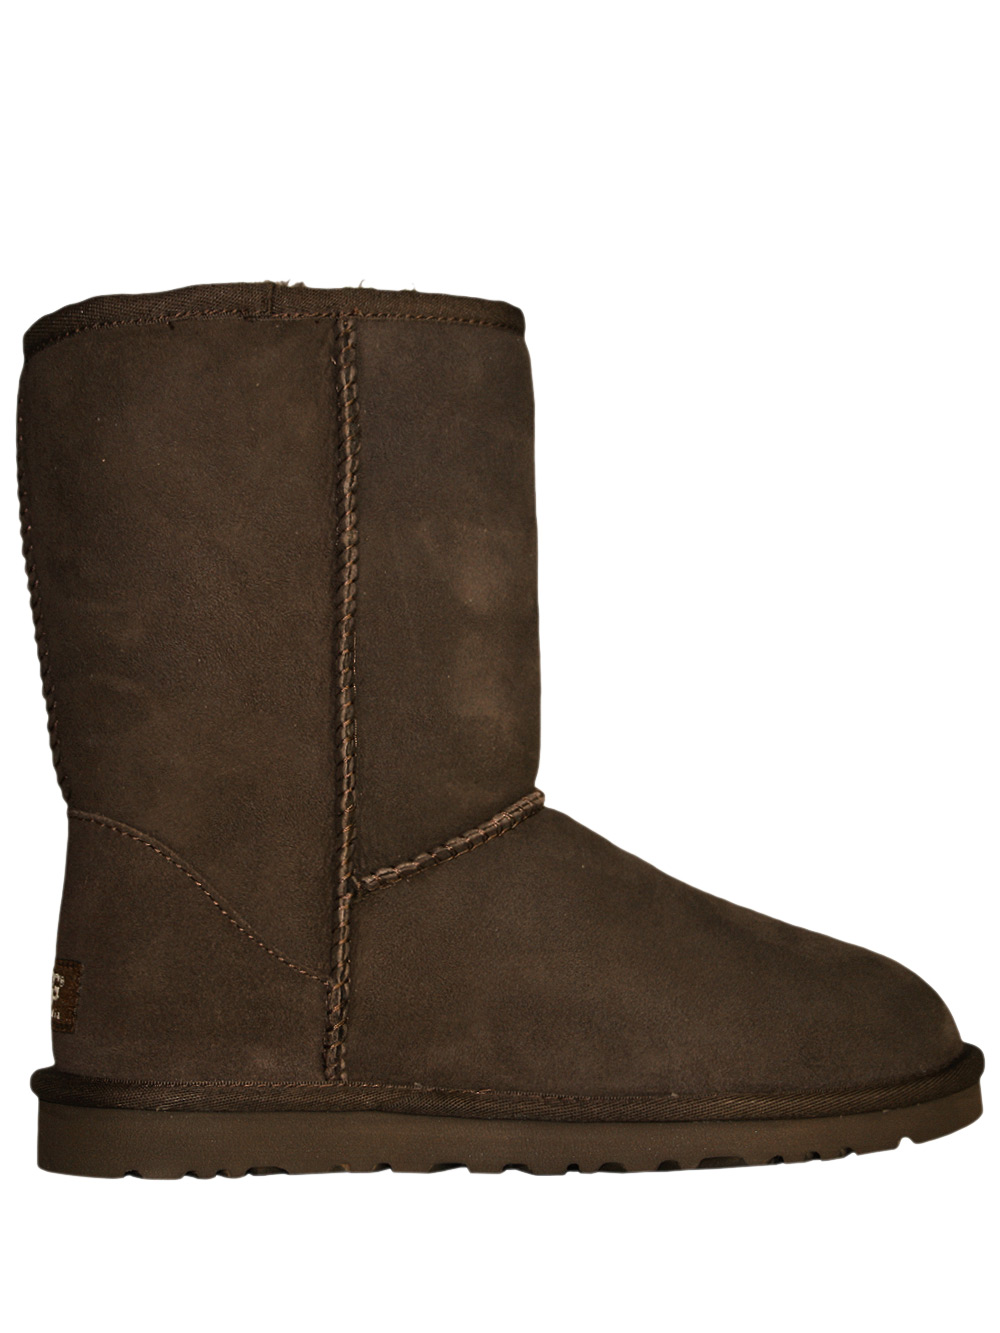 Ugg australia discount coupon